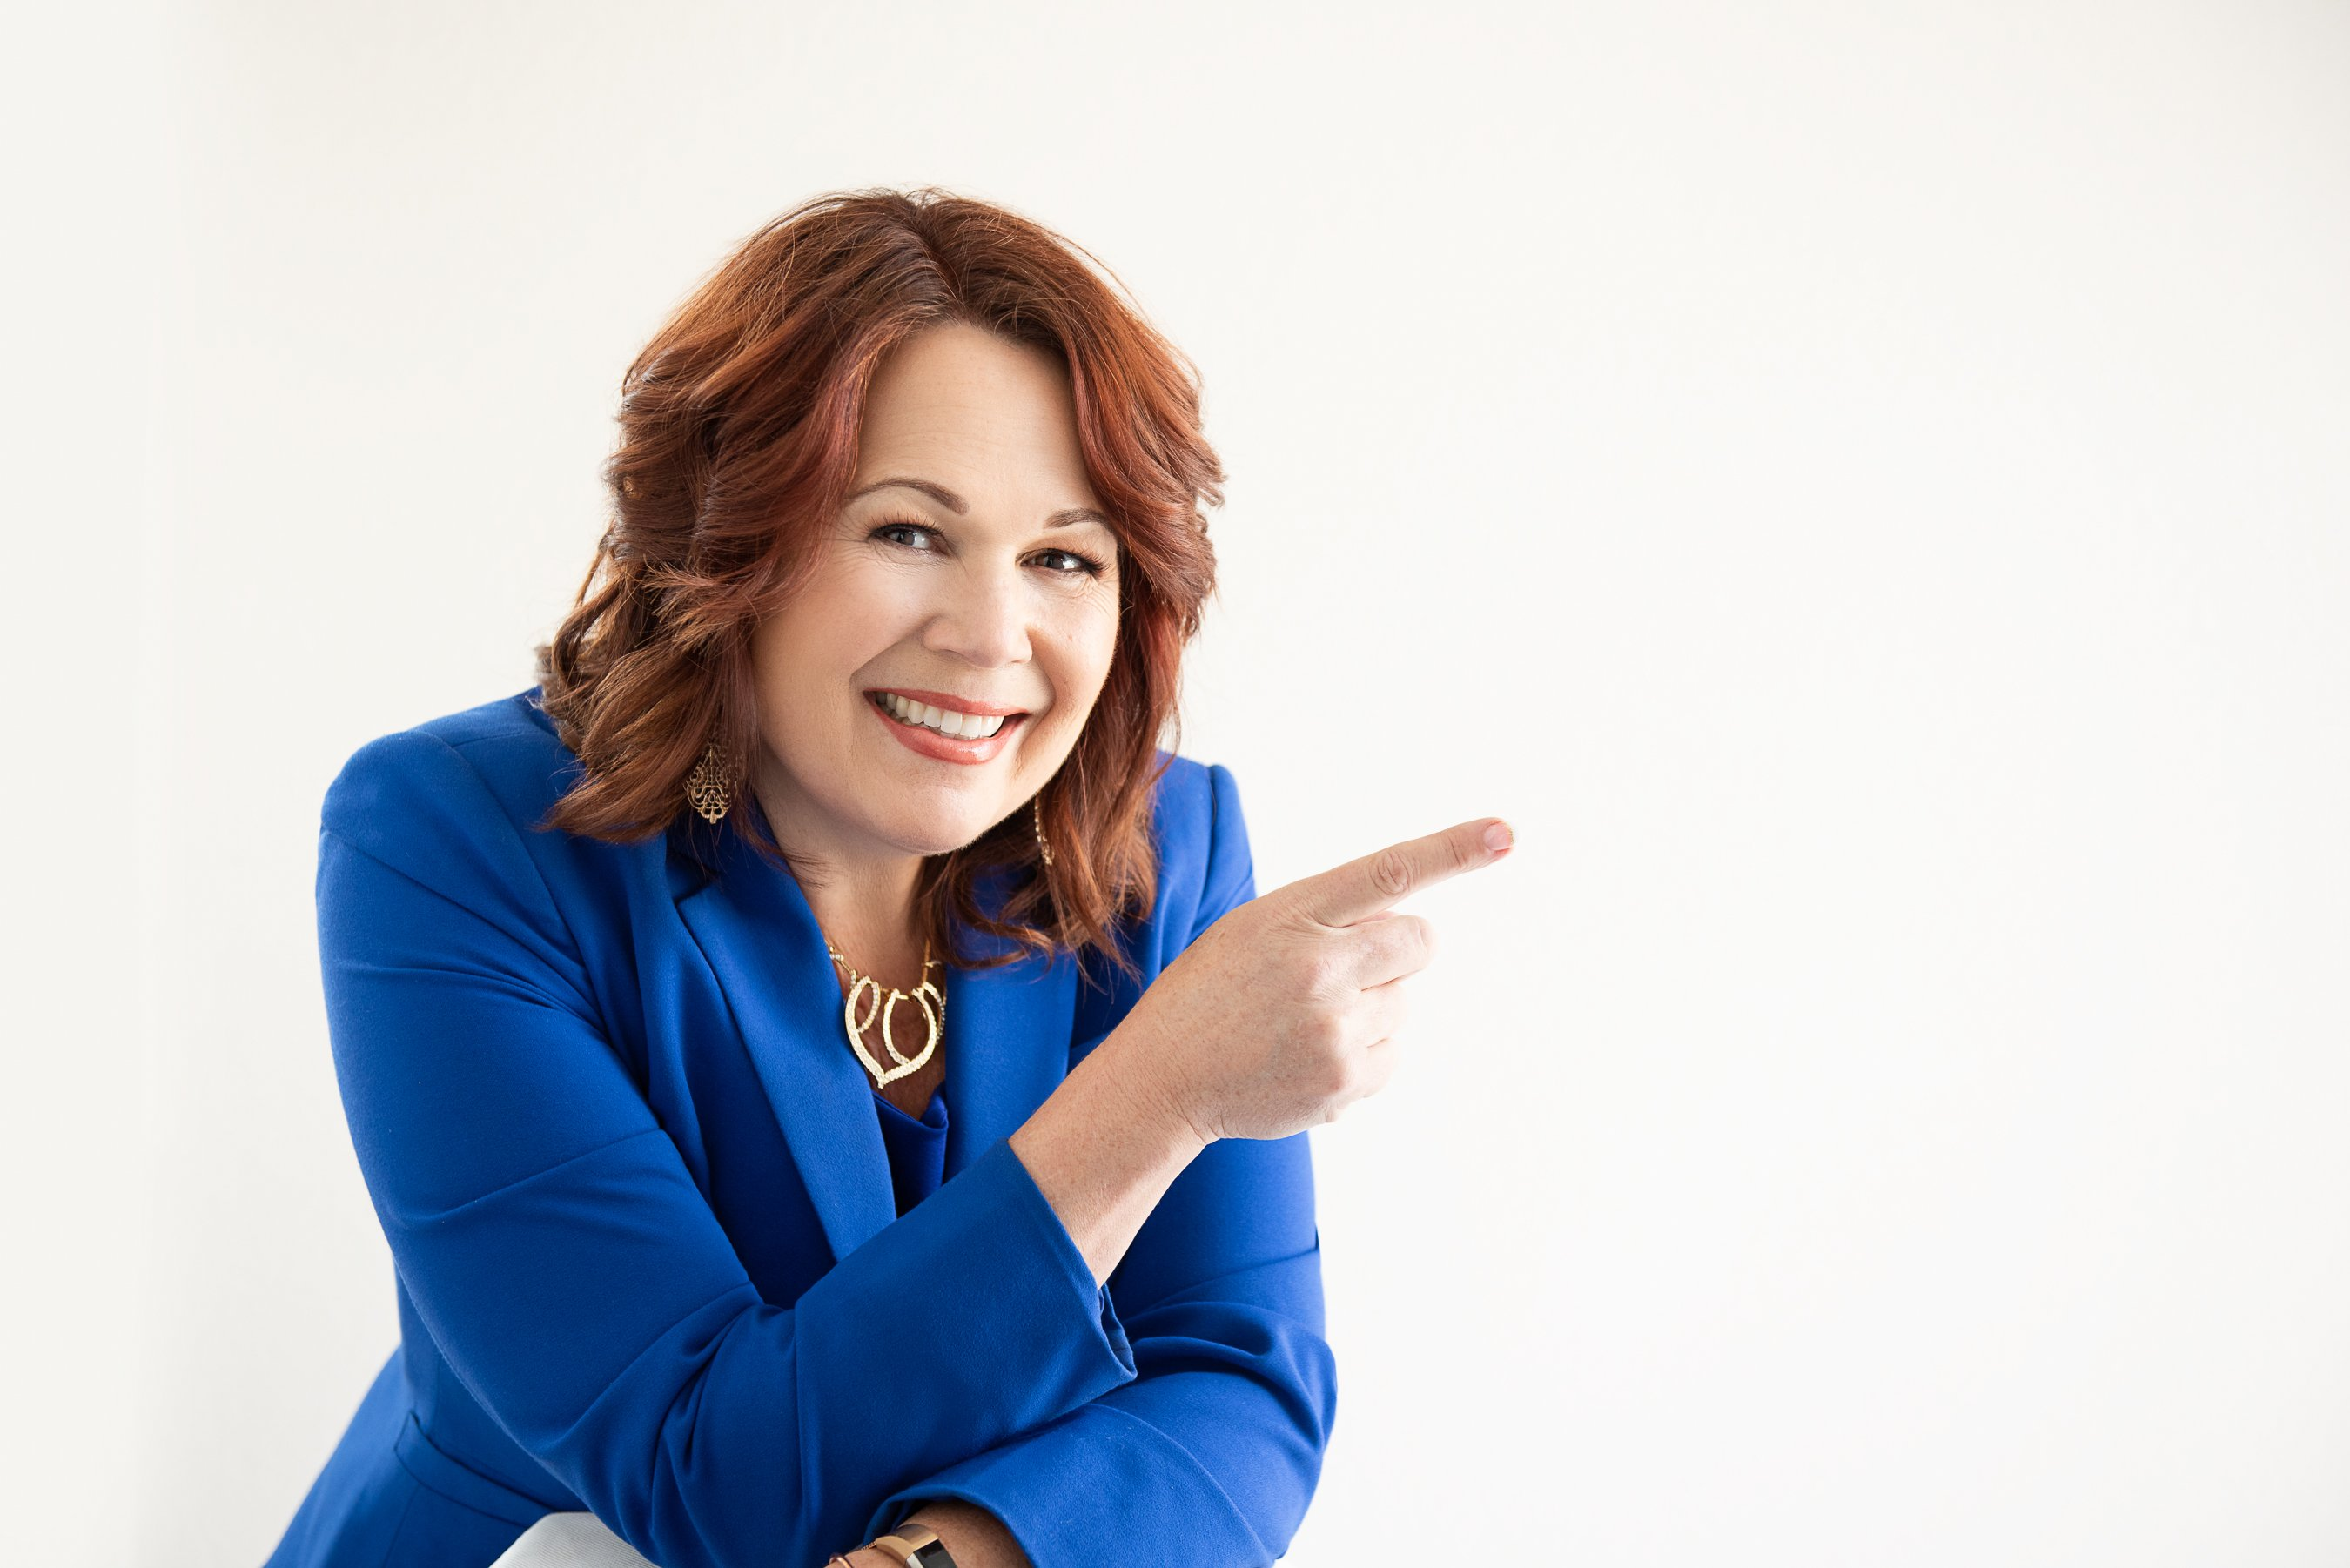 Leslie Gunterson: Certified Master Practitioner and Trainer of Nuero-Linguistic Programming, NLP Coaching, Time Line Therapy®, Clinical Hypnotherapy, ThetaHealing®, Licensed Financial Professional.